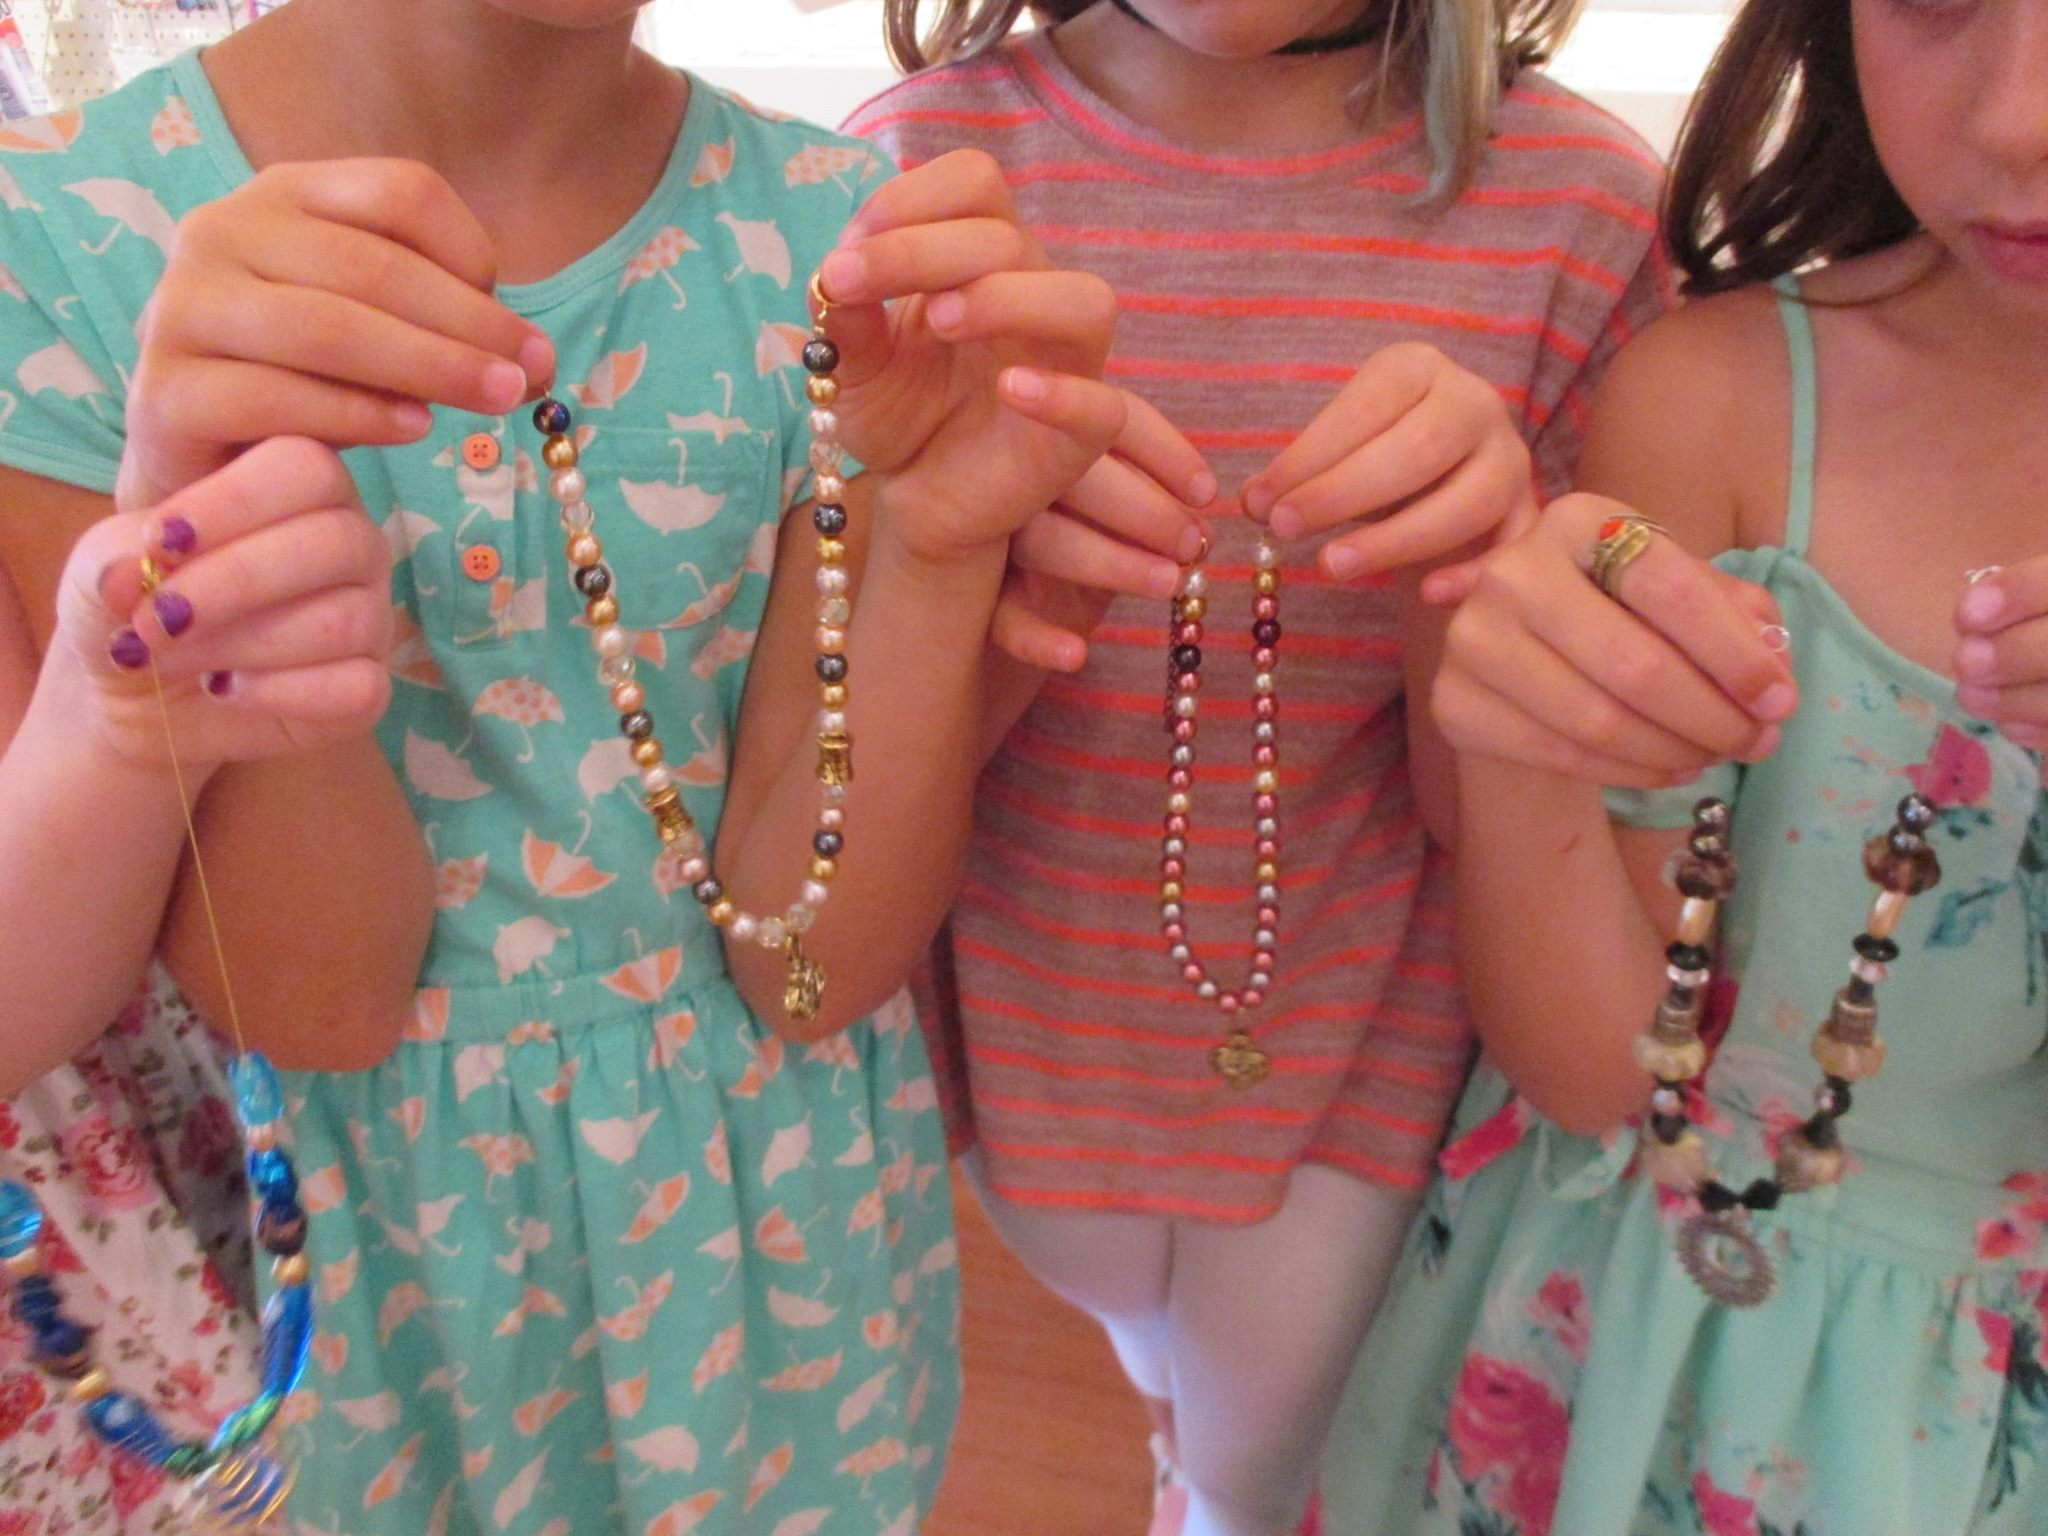 girls holding beaded jewellery